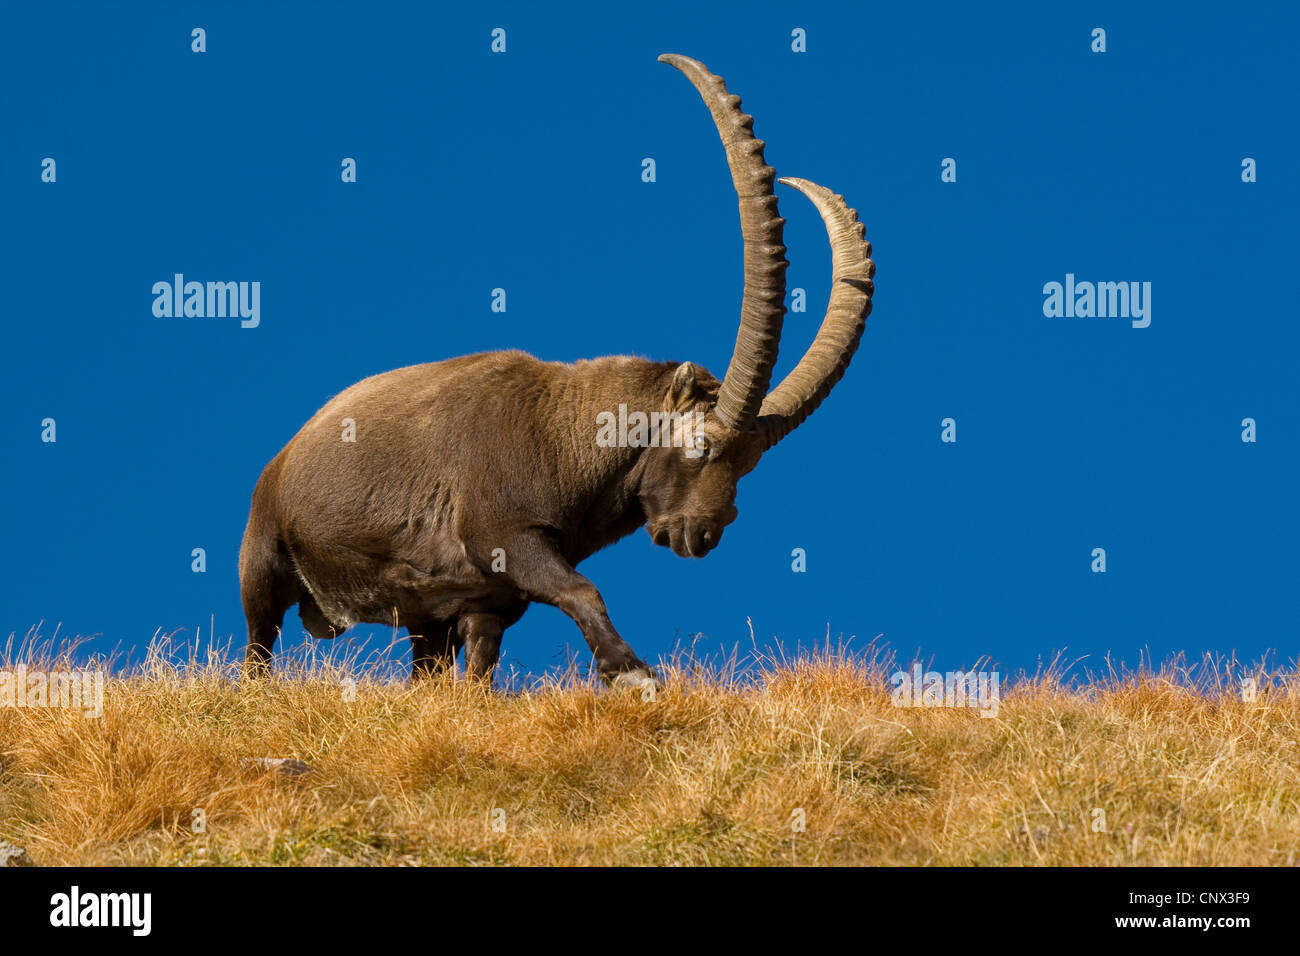 alpine ibex (Capra ibex), mighty male walking over a grass-grown hill ridge in front of a clear blue sky, Switzerland, Stock Photo